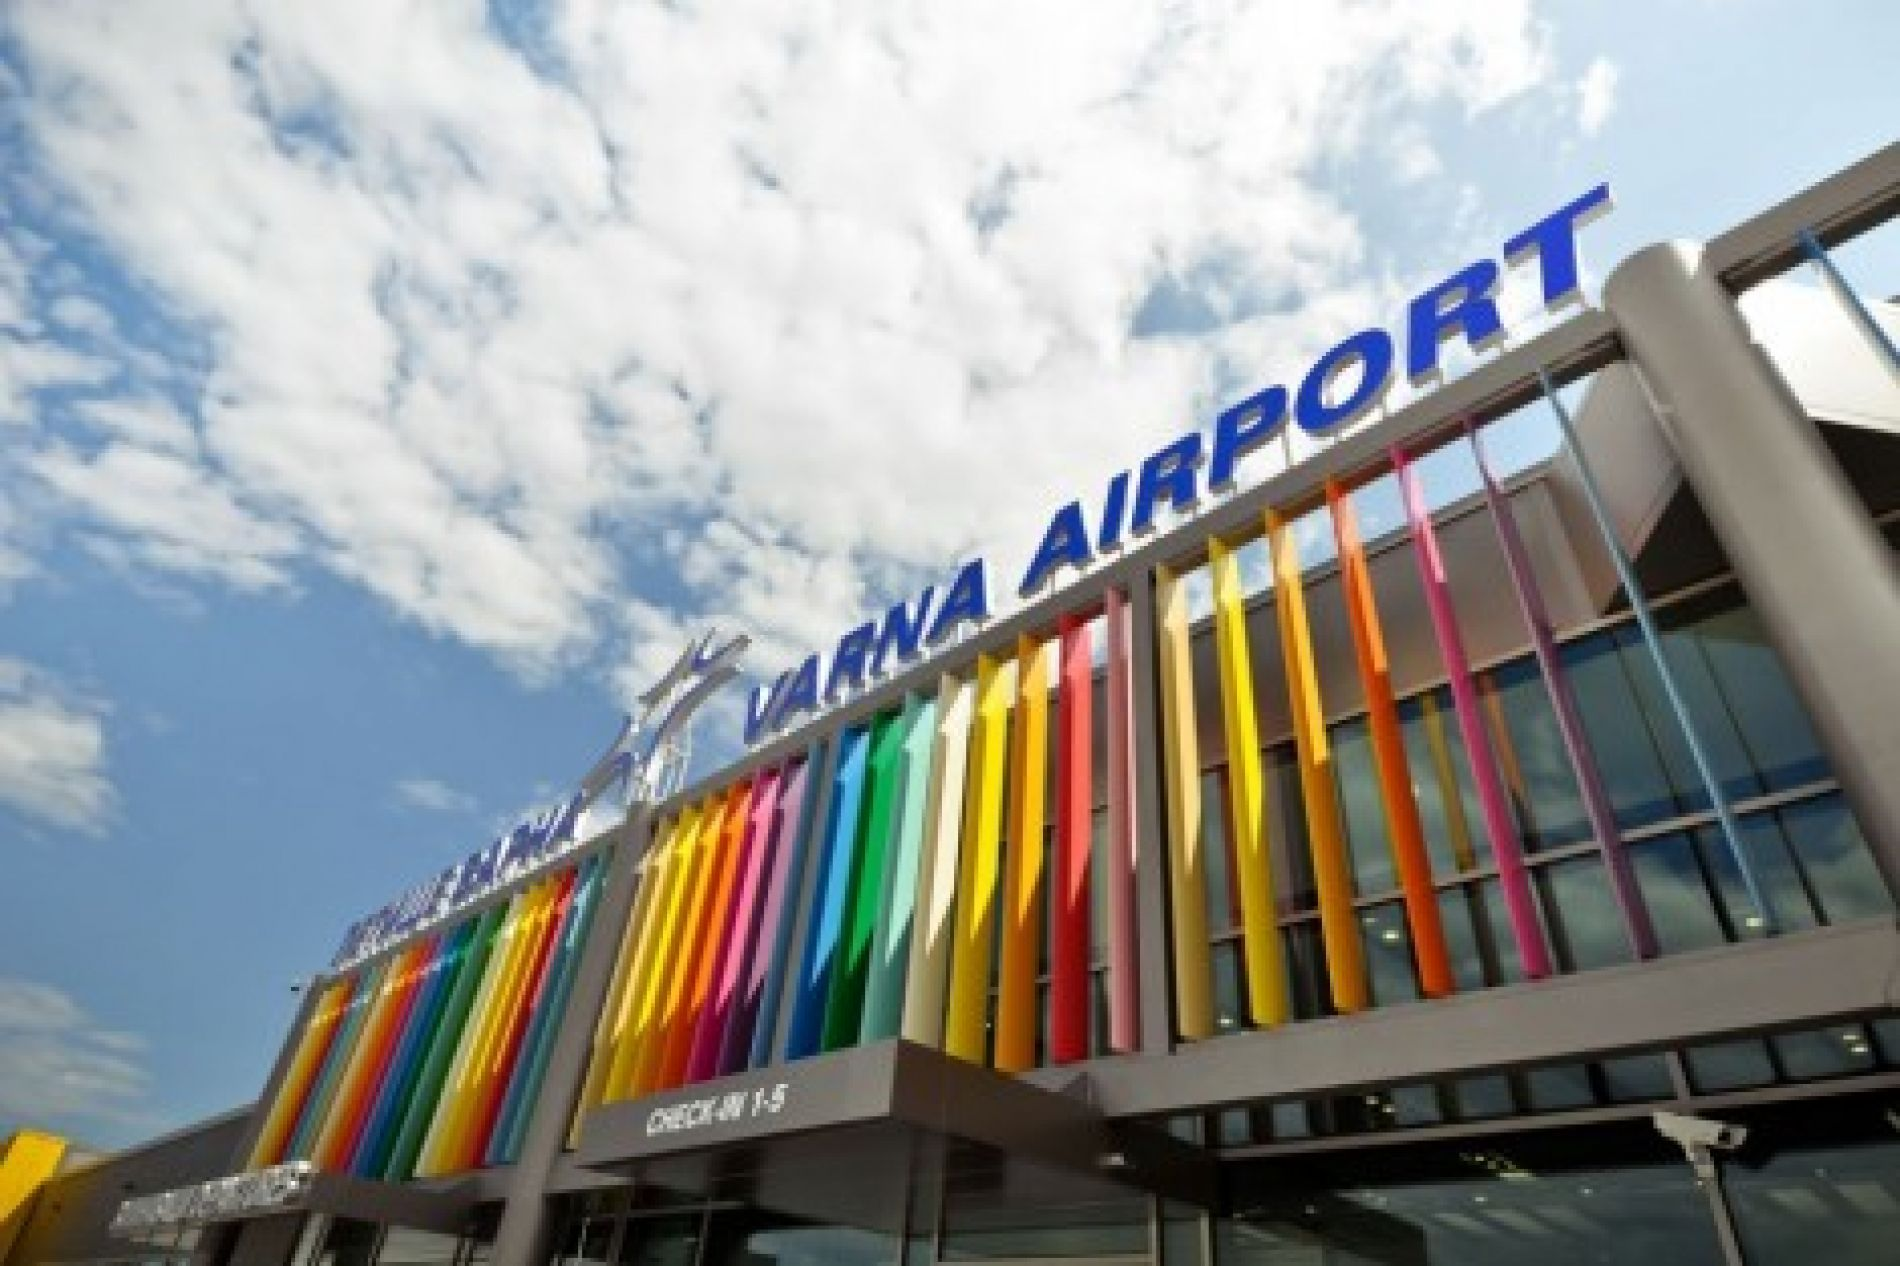 587 passengers from Israel landed in Varna in a week